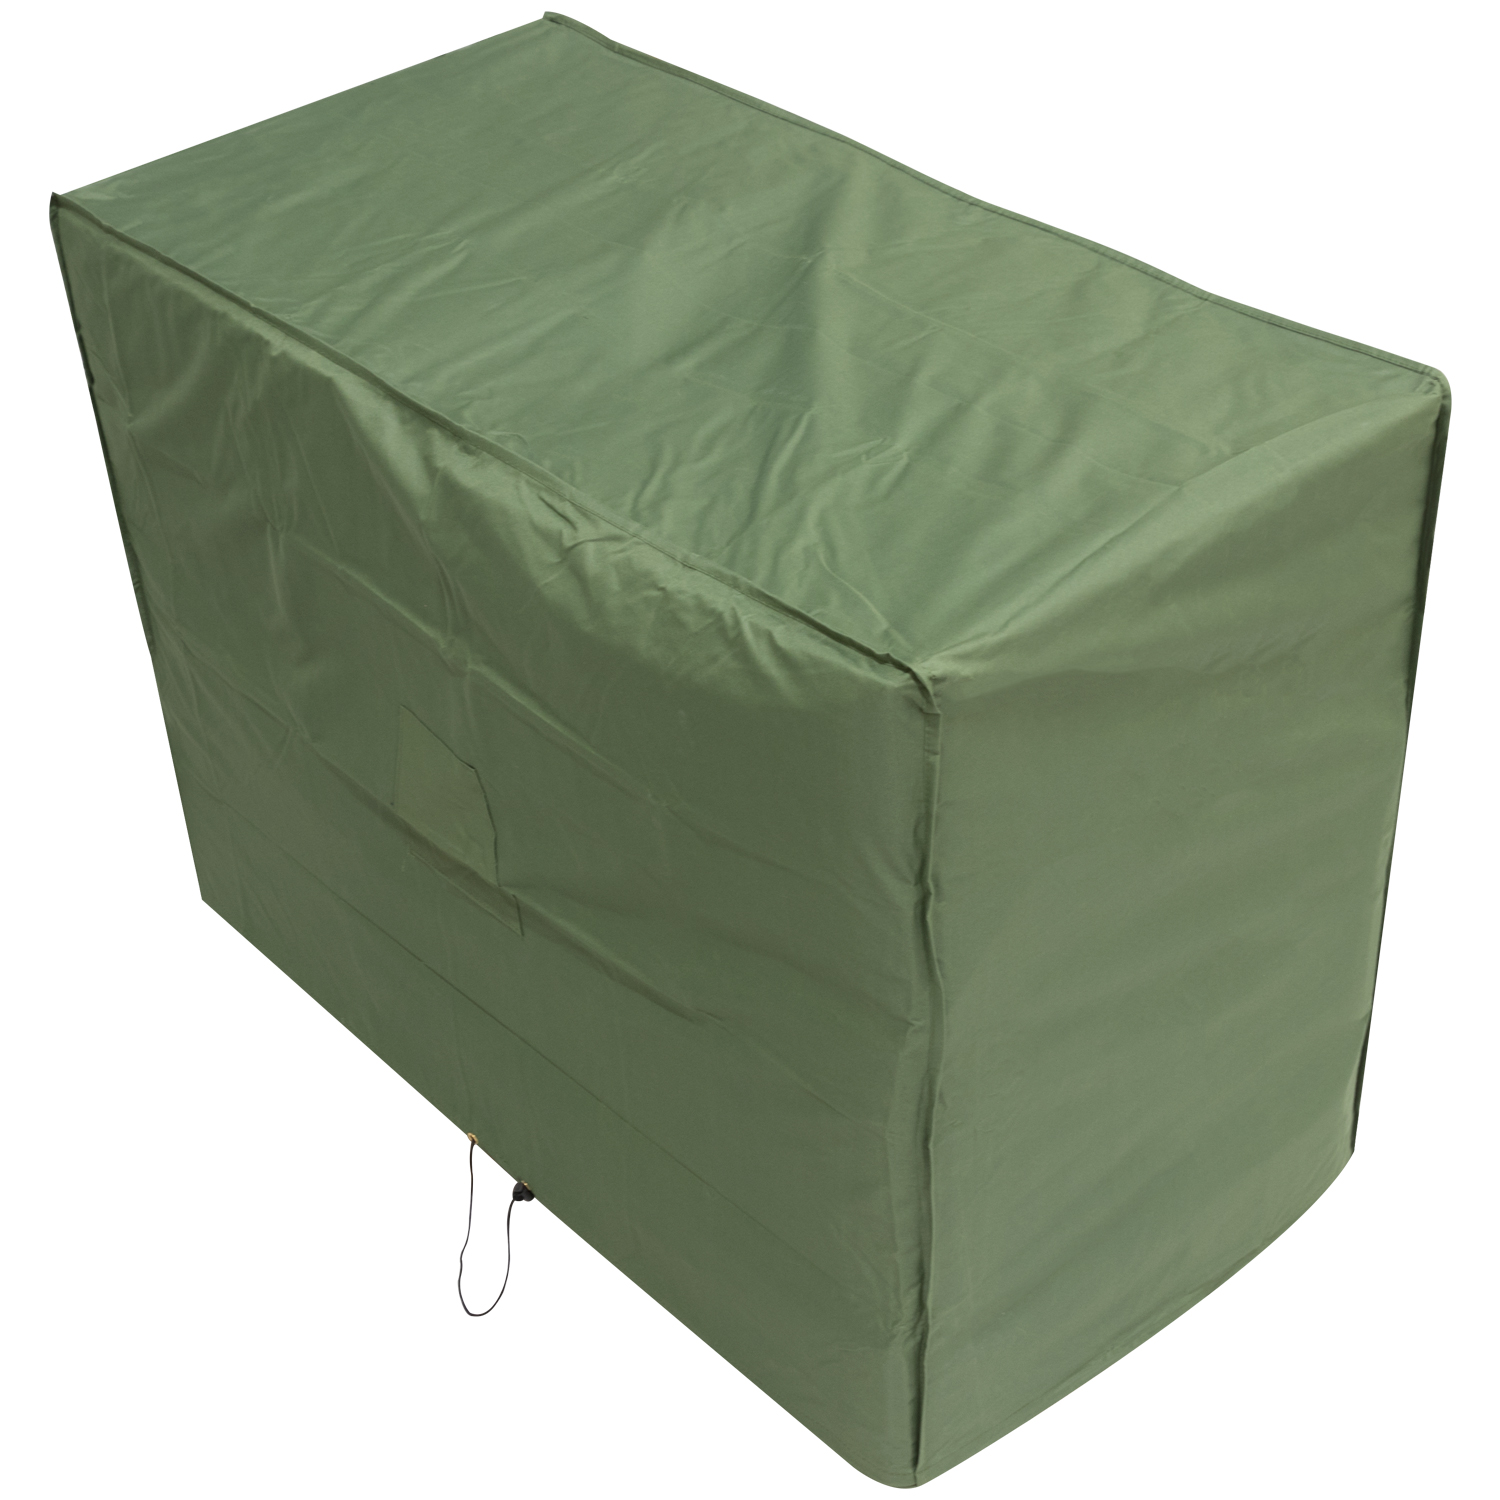 green garden chair covers eames plastic oxbridge small 2 seater bench cover